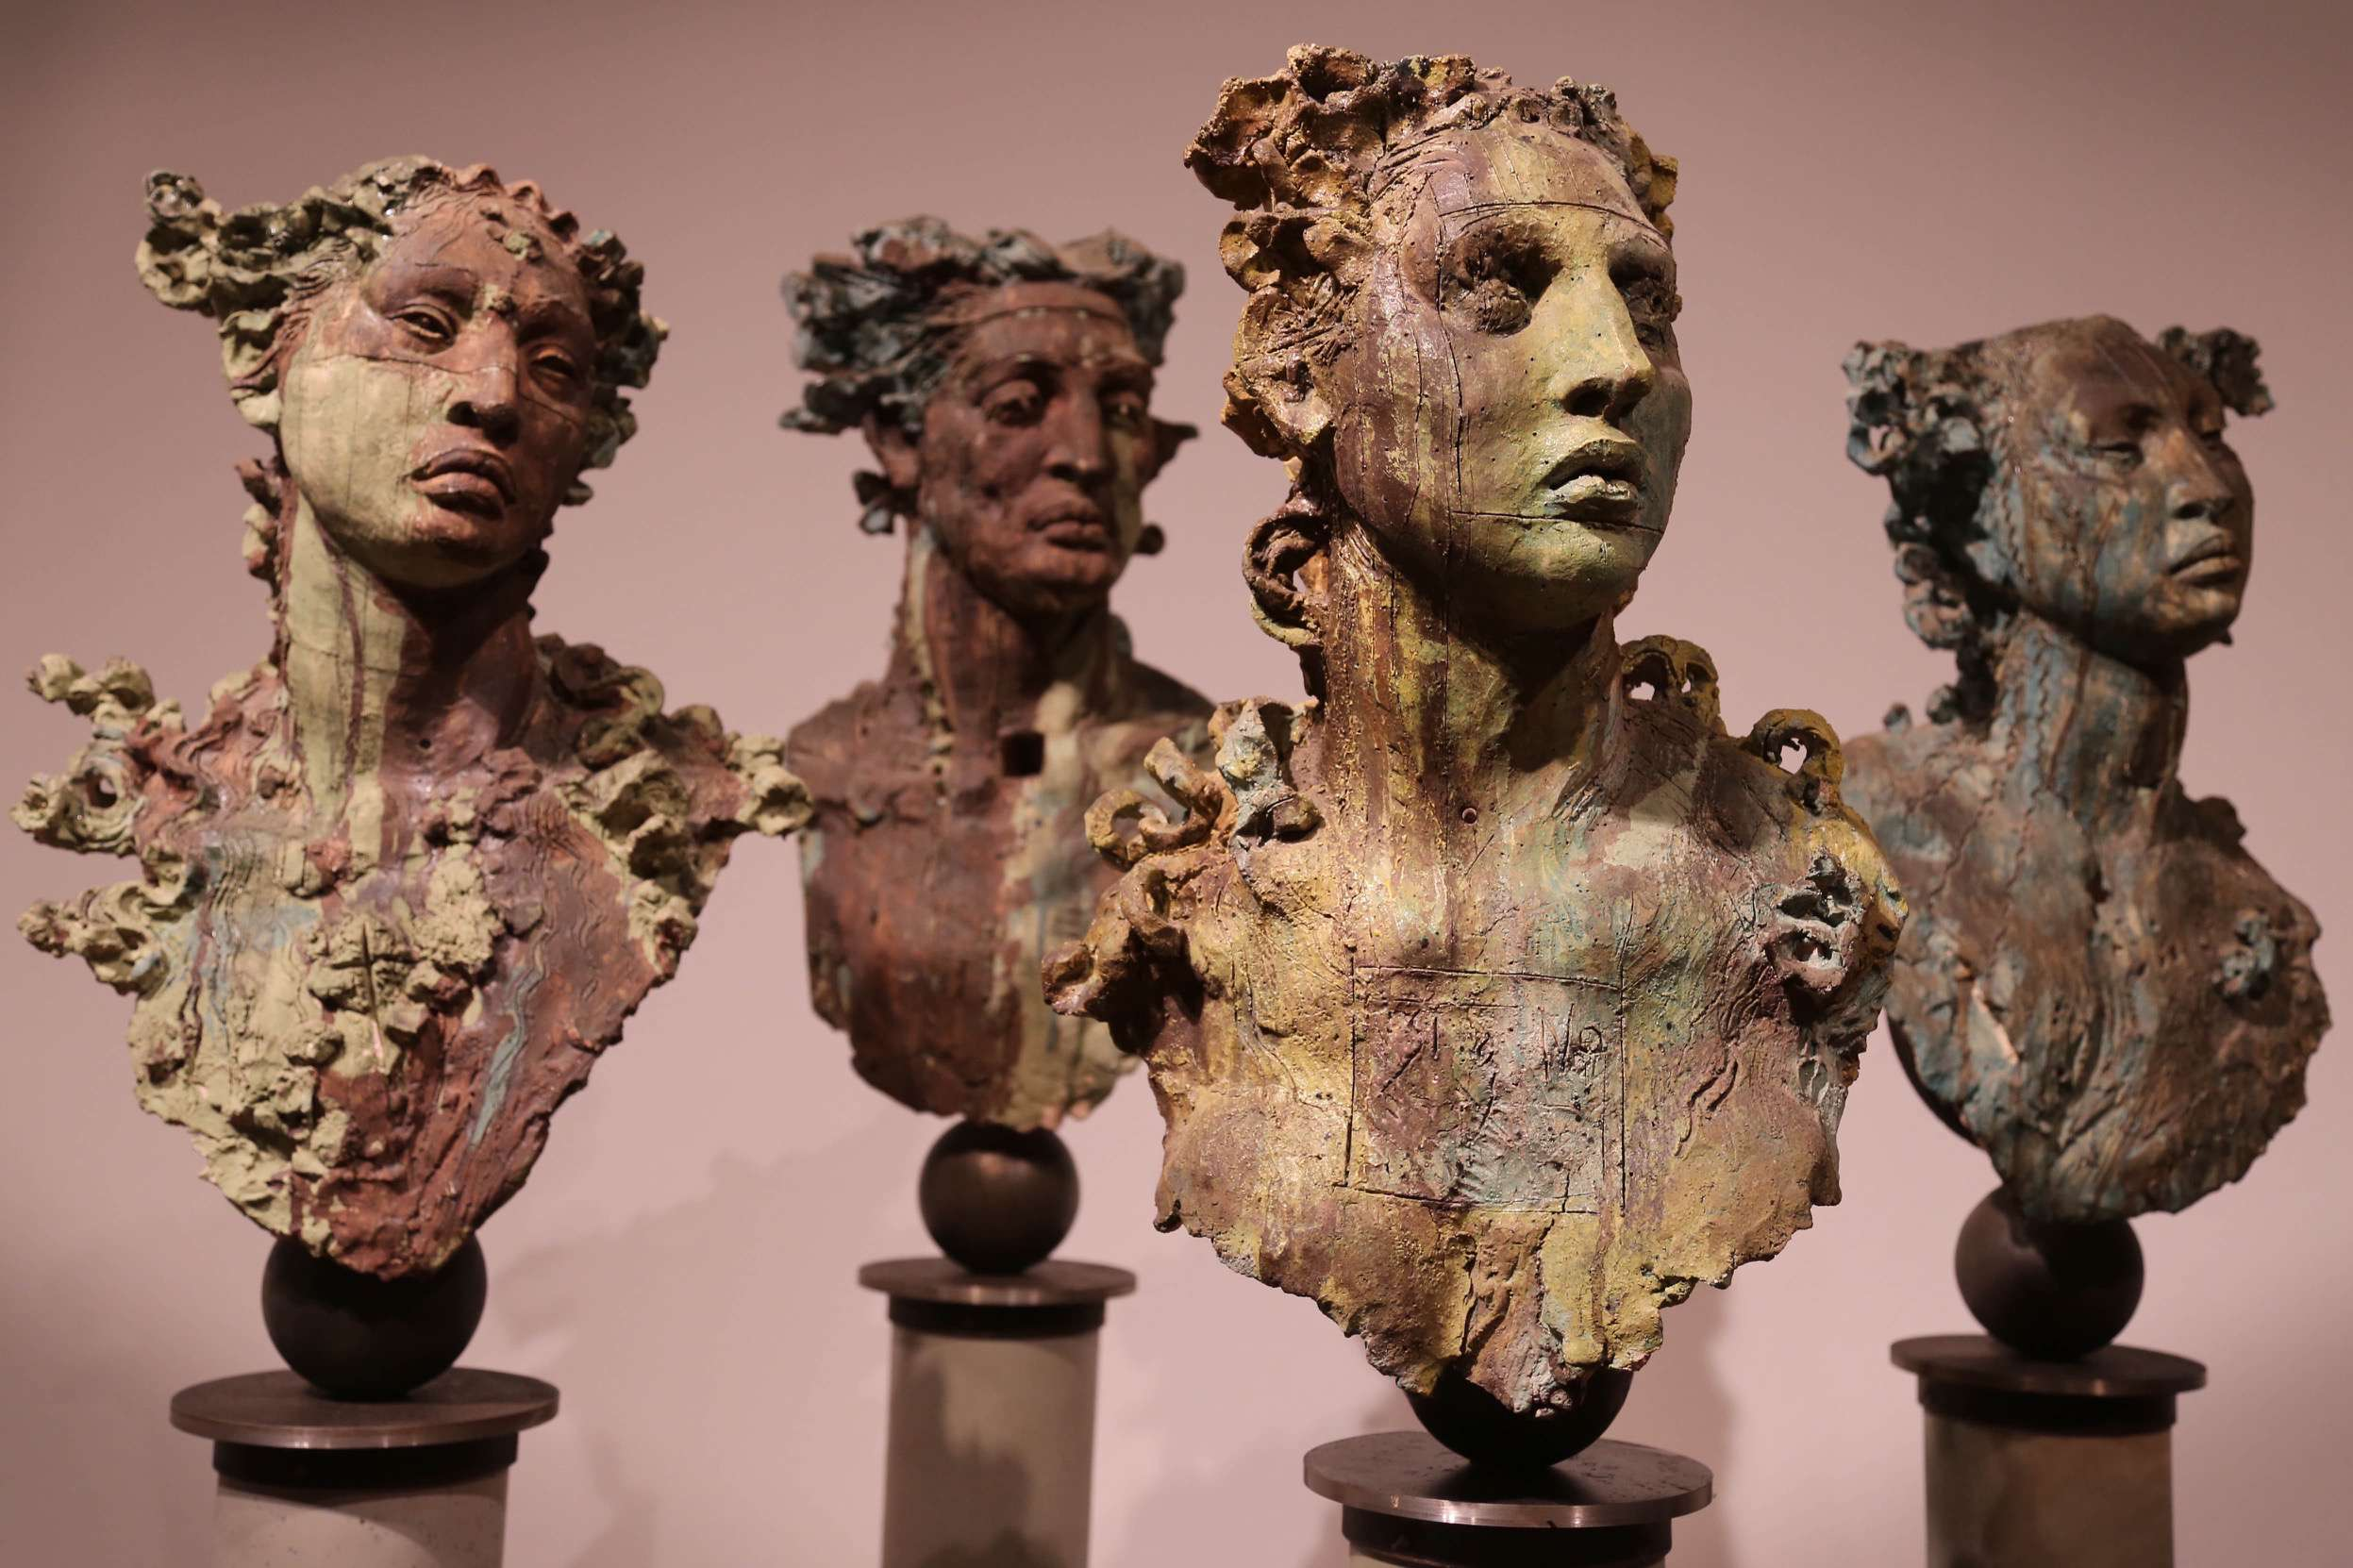 The genuineness of the figures and busts sculpted by Javier Marin change expression just by looking at them from a different angle.